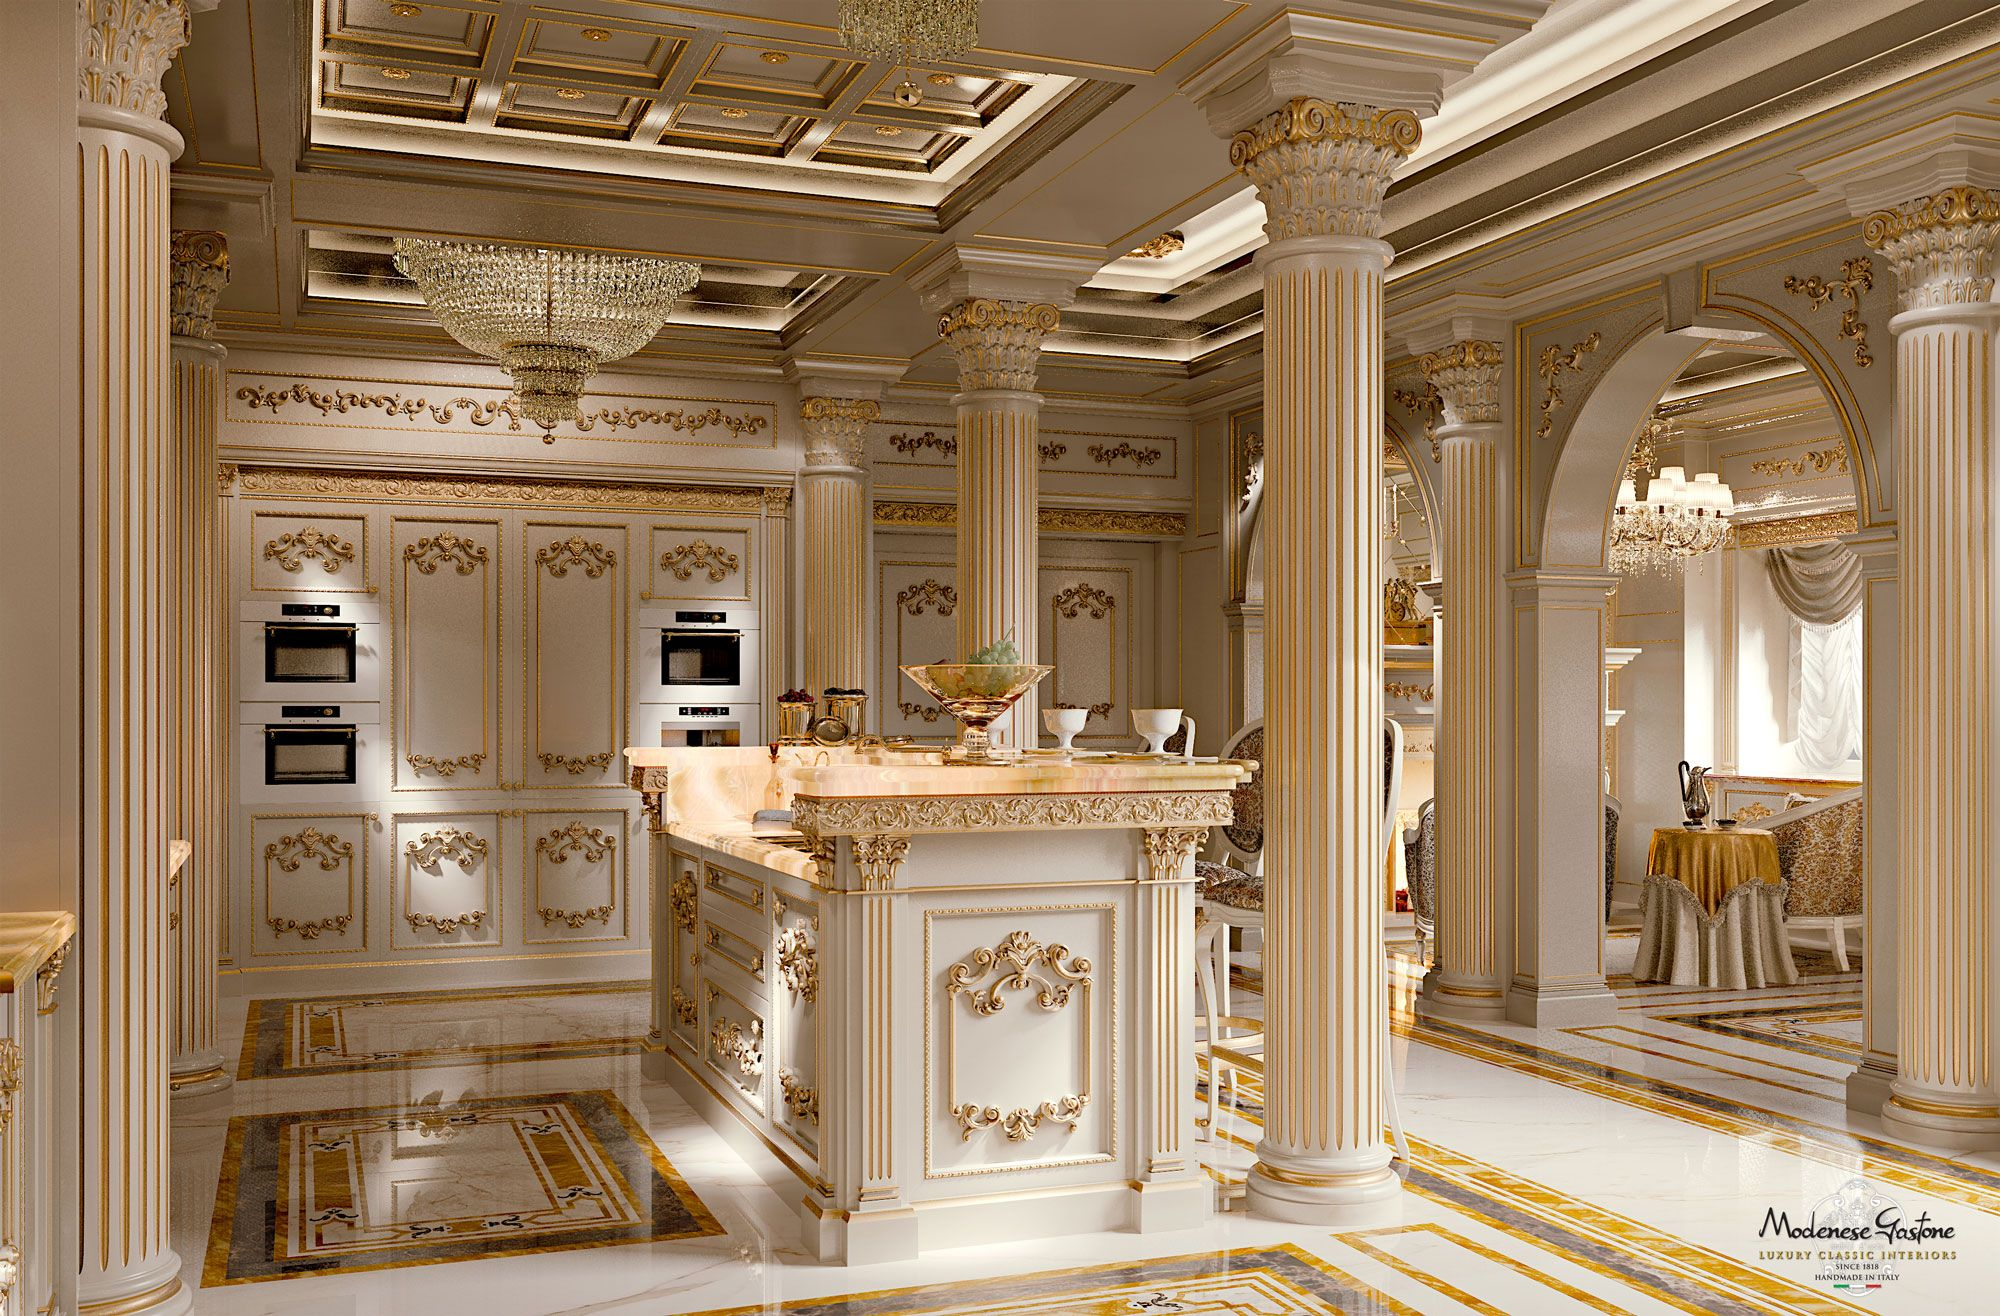 Imperial-kitchen-with-backlit-marble-Kitchen-King-ivory-version ...